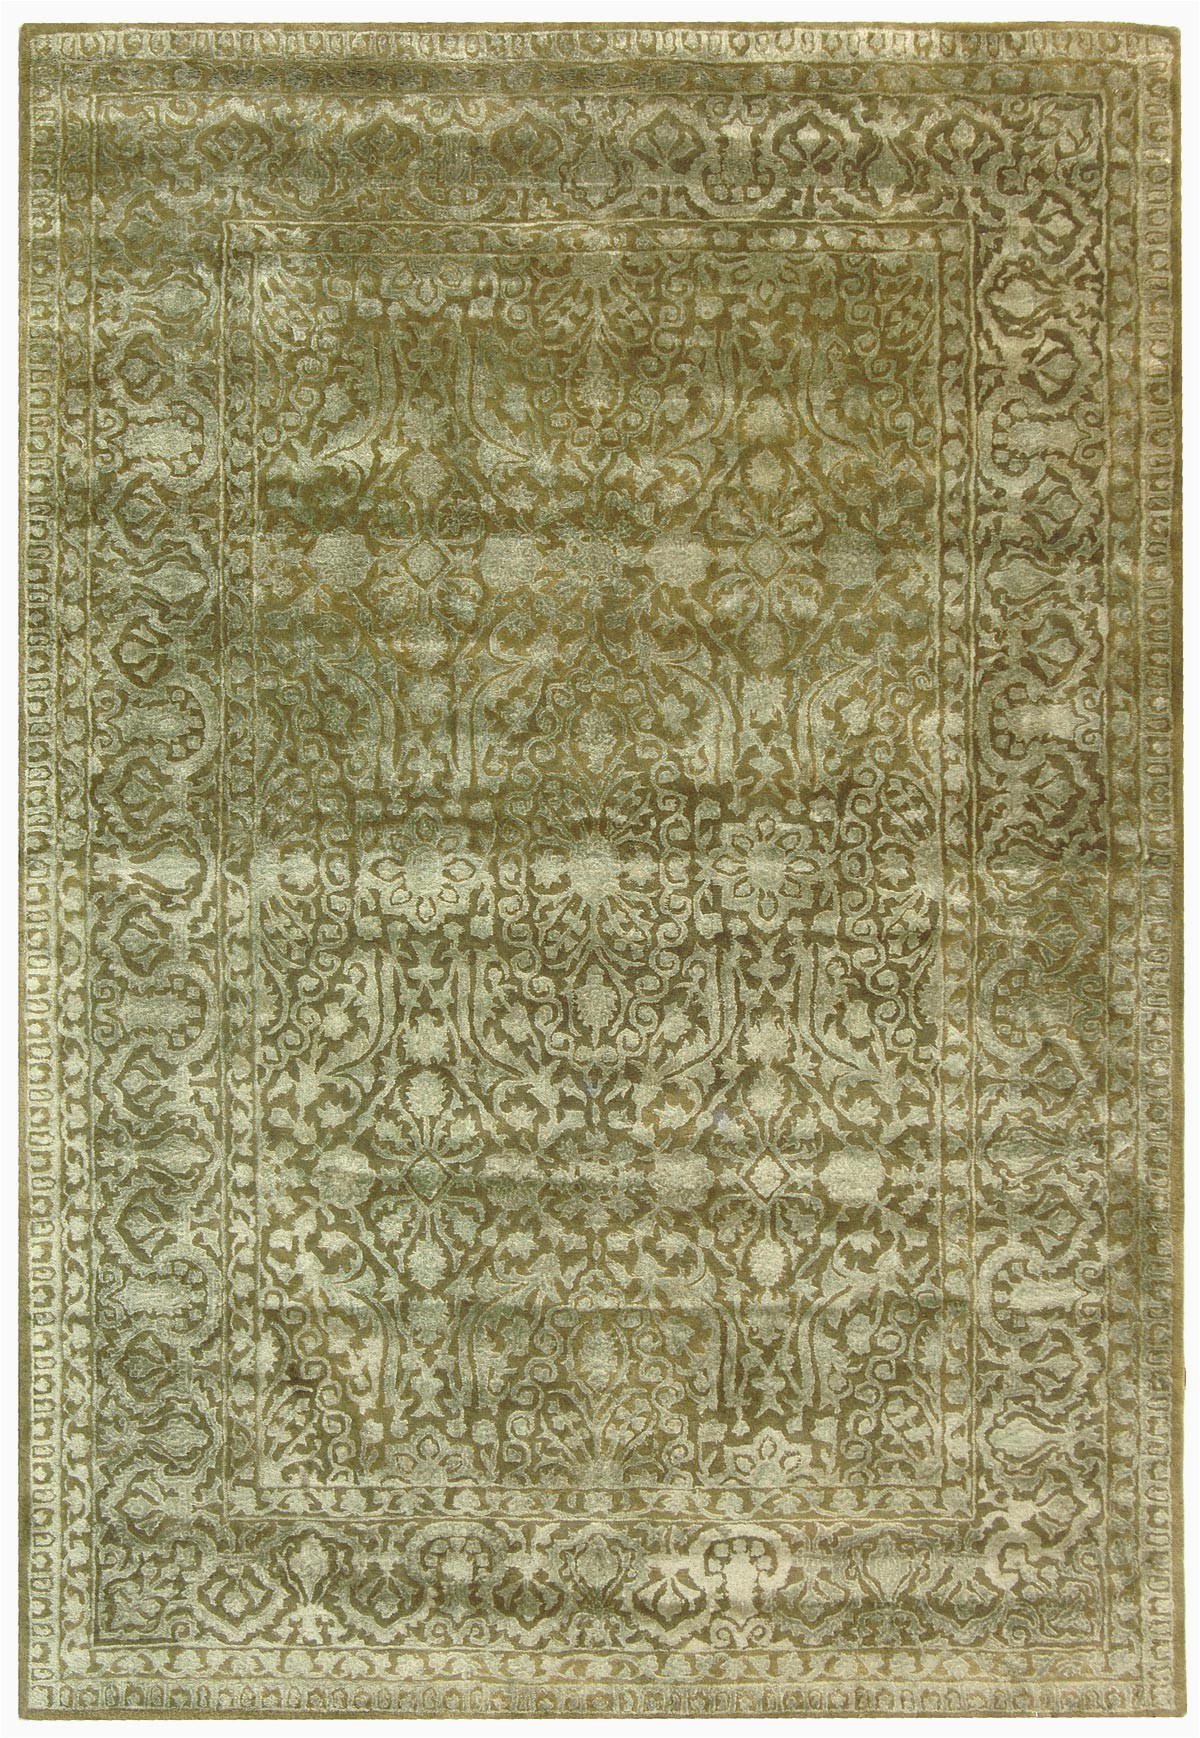 Solid Sage Green area Rug Rug Skr213d Silk Road area Rugs by Safavieh